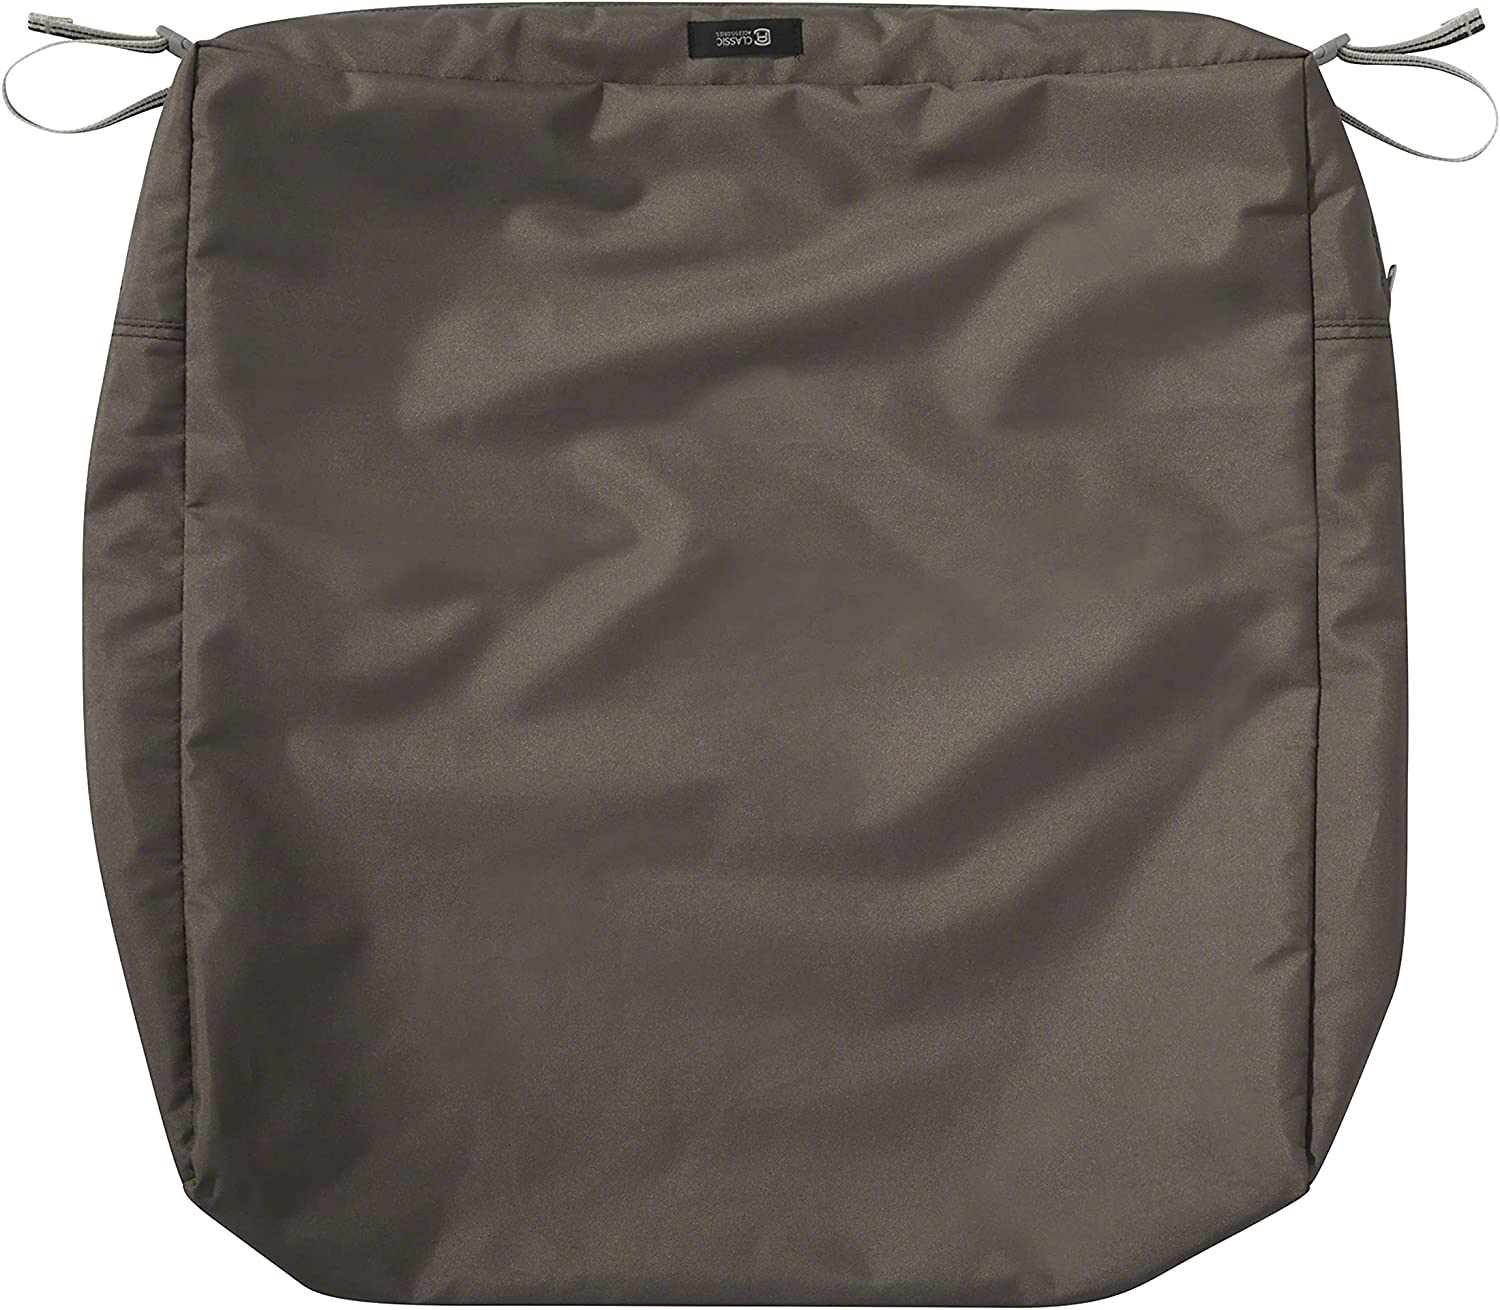 Classic Accessories Ravenna Water-Resistant 25 x 25 x 5 Inch Square Outdoor Seat Cushion Slip Cover, Patio Furniture Chair Cushion Cover, Dark Taupe